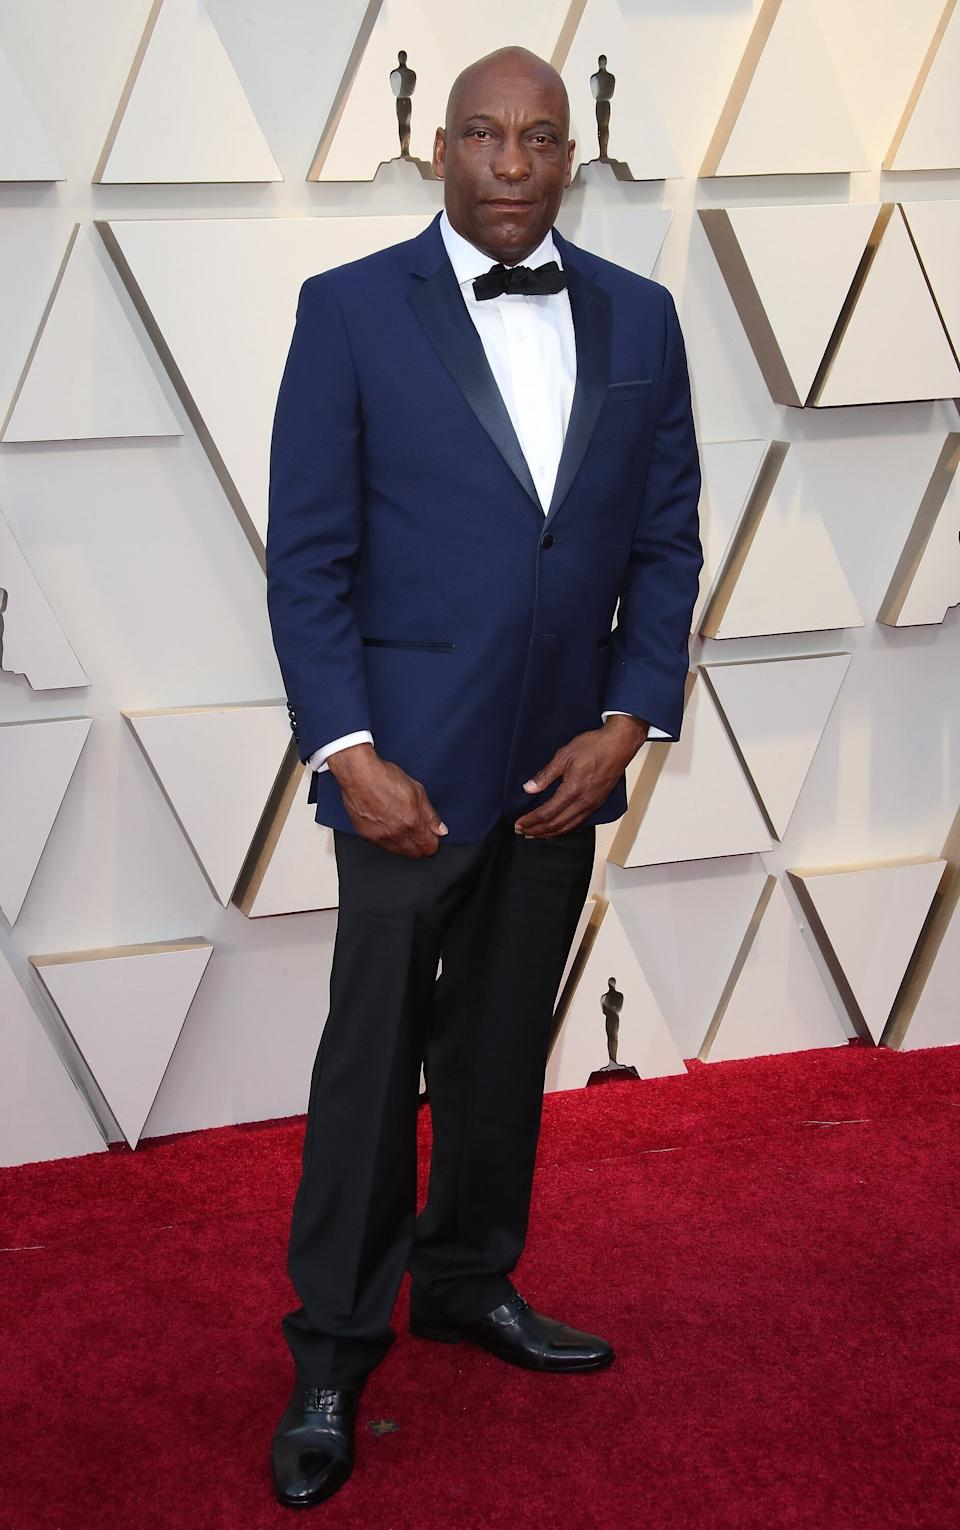 """<strong>John Singleton (1968-2019)<br /></strong>Among those who paid their respects to the groundbreaking Oscar-nominated director was Barack Obama, who praised Singleton for """"opening doors for filmmakers of colour""""."""